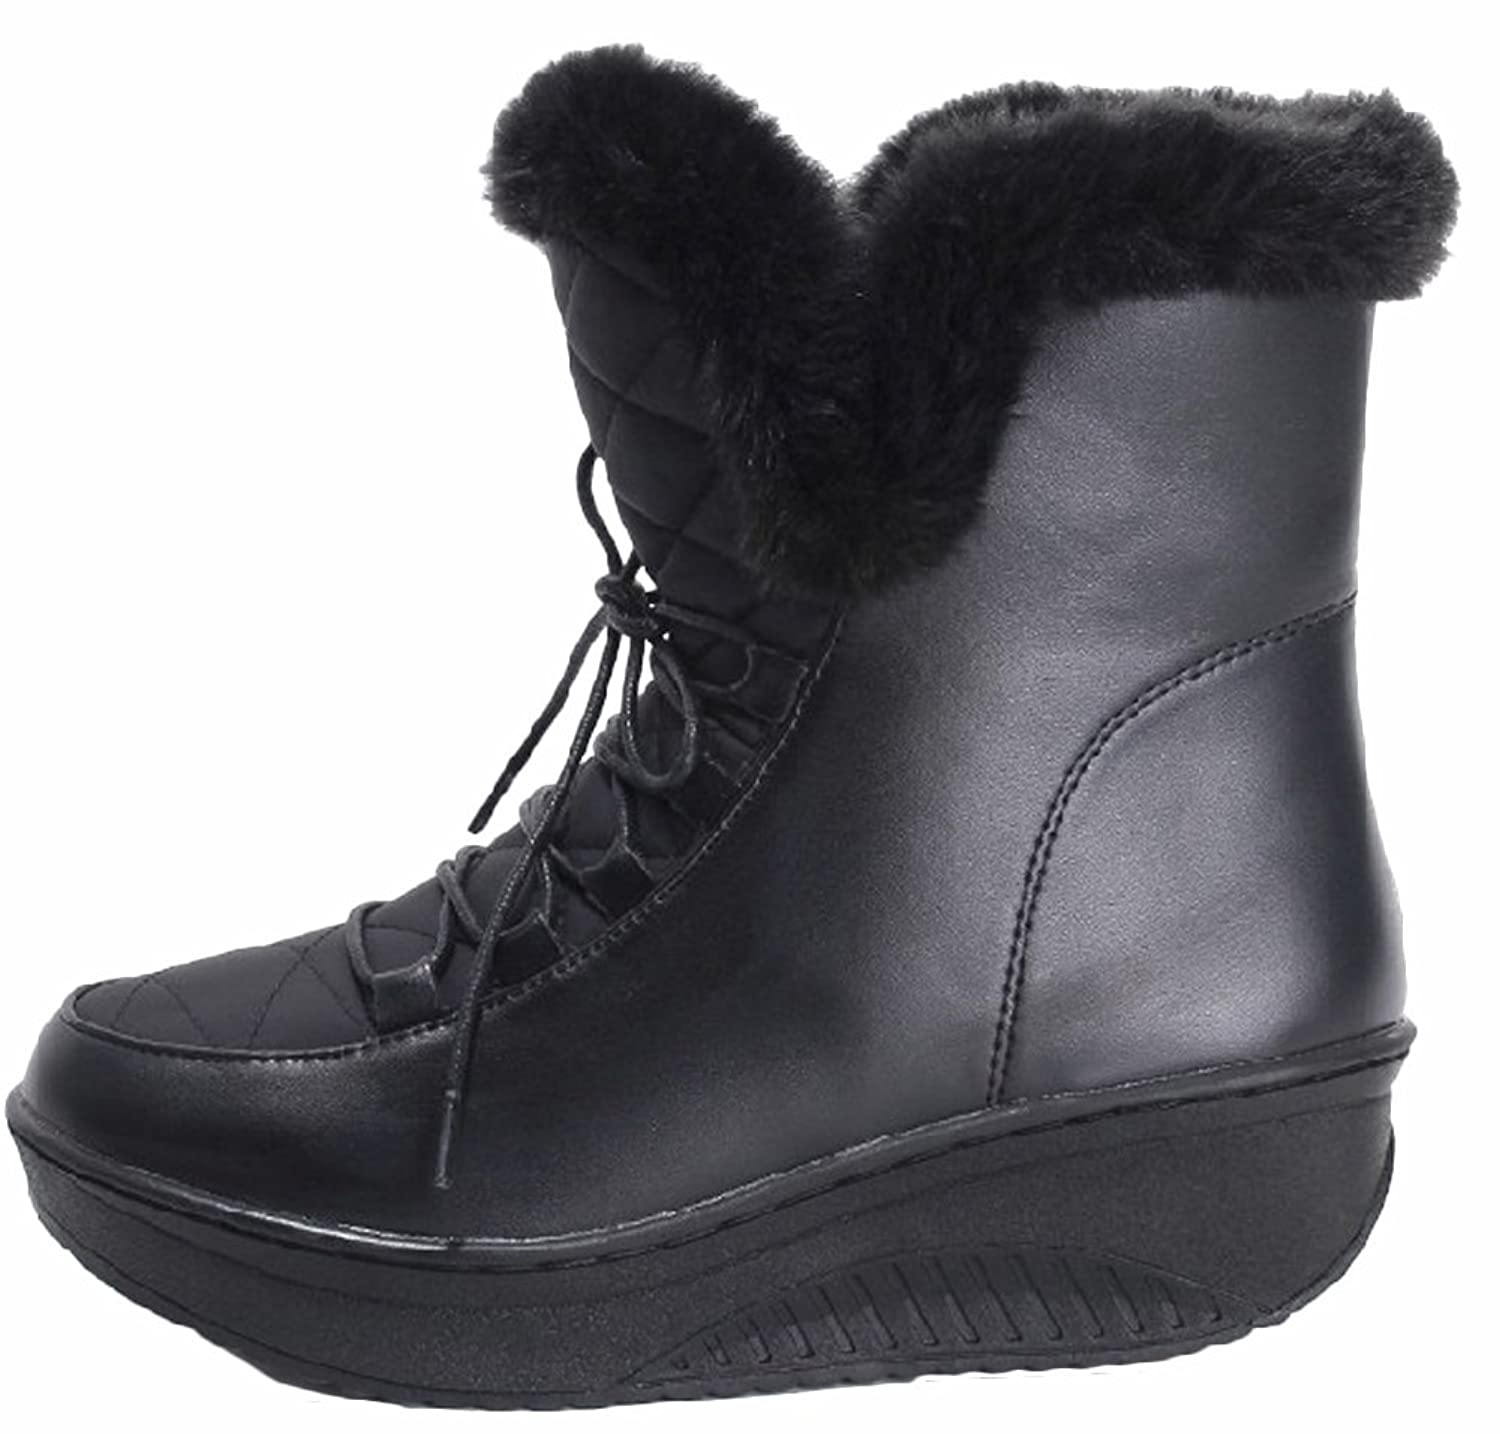 Ace Women's Winter Flat Mid-calf Thickened Thermal Snow Boots with Fur